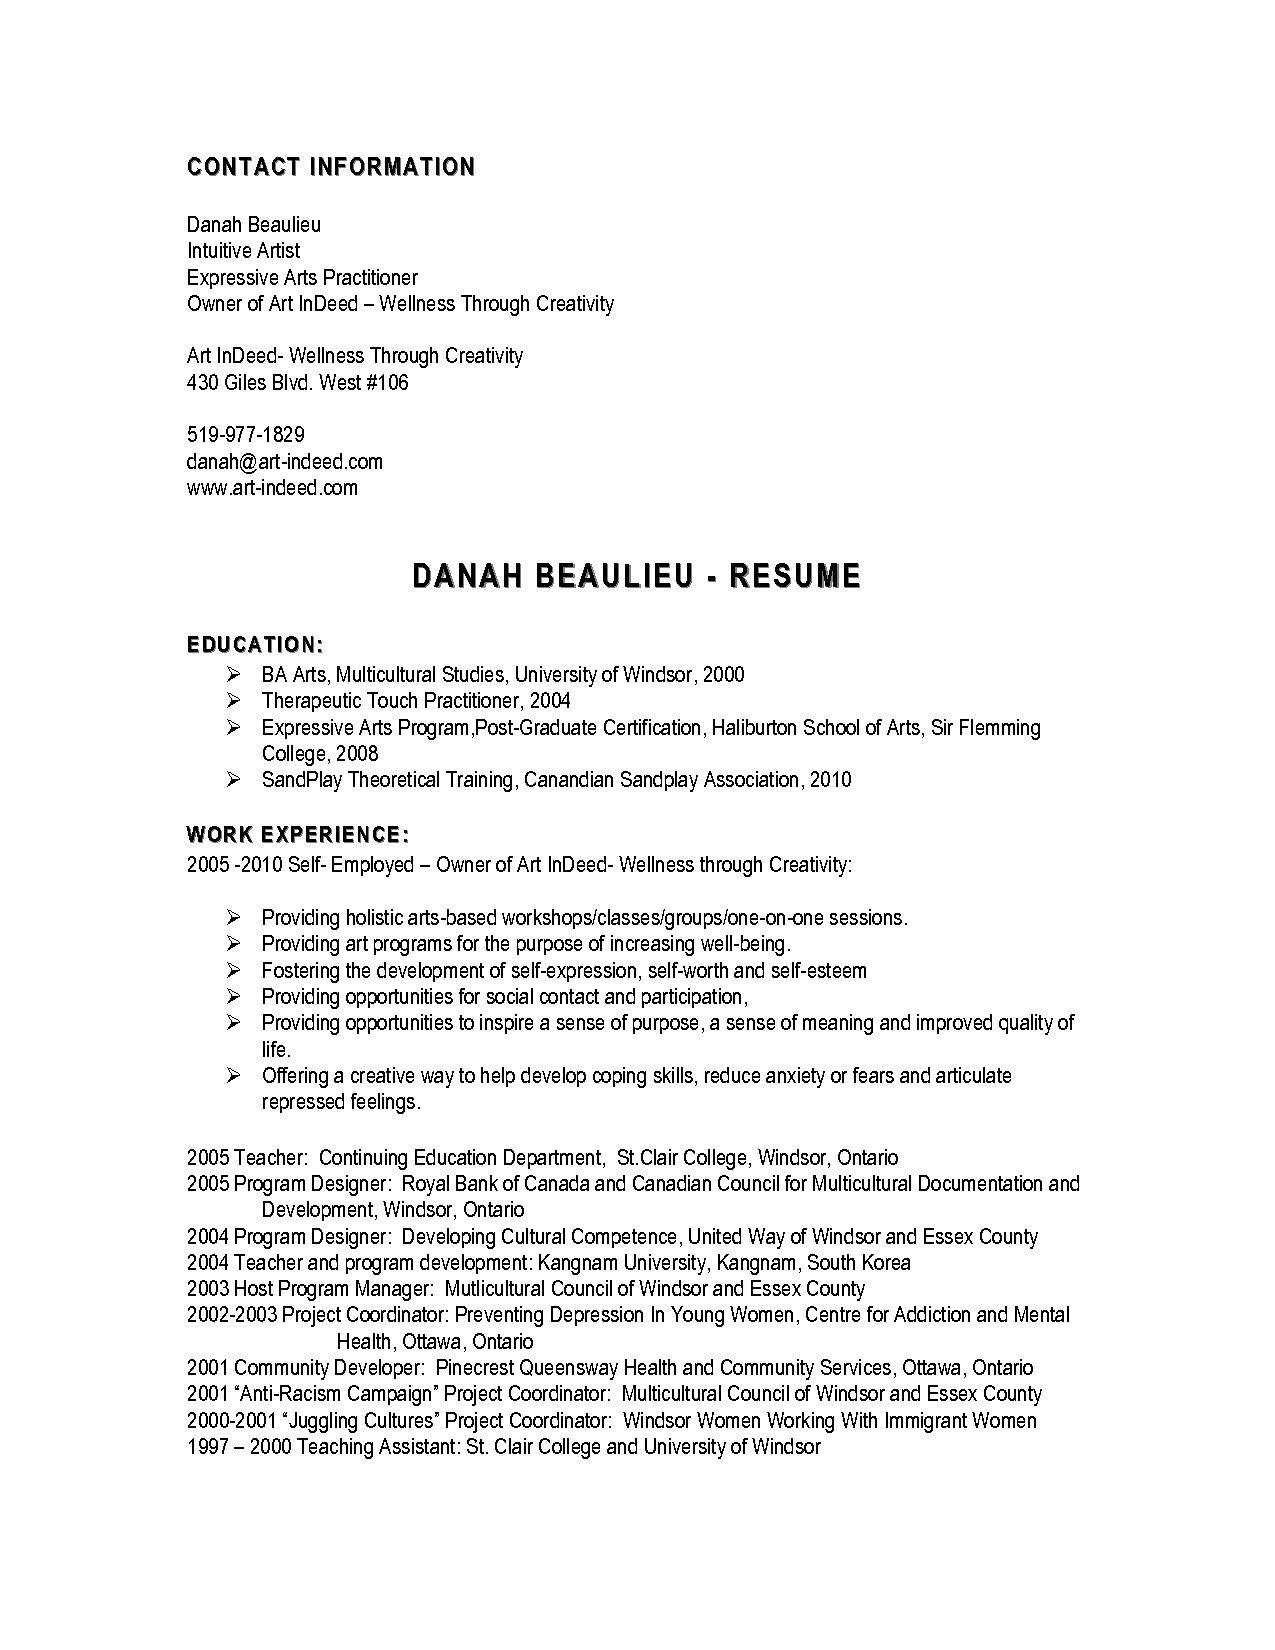 Where can i buy resume templates